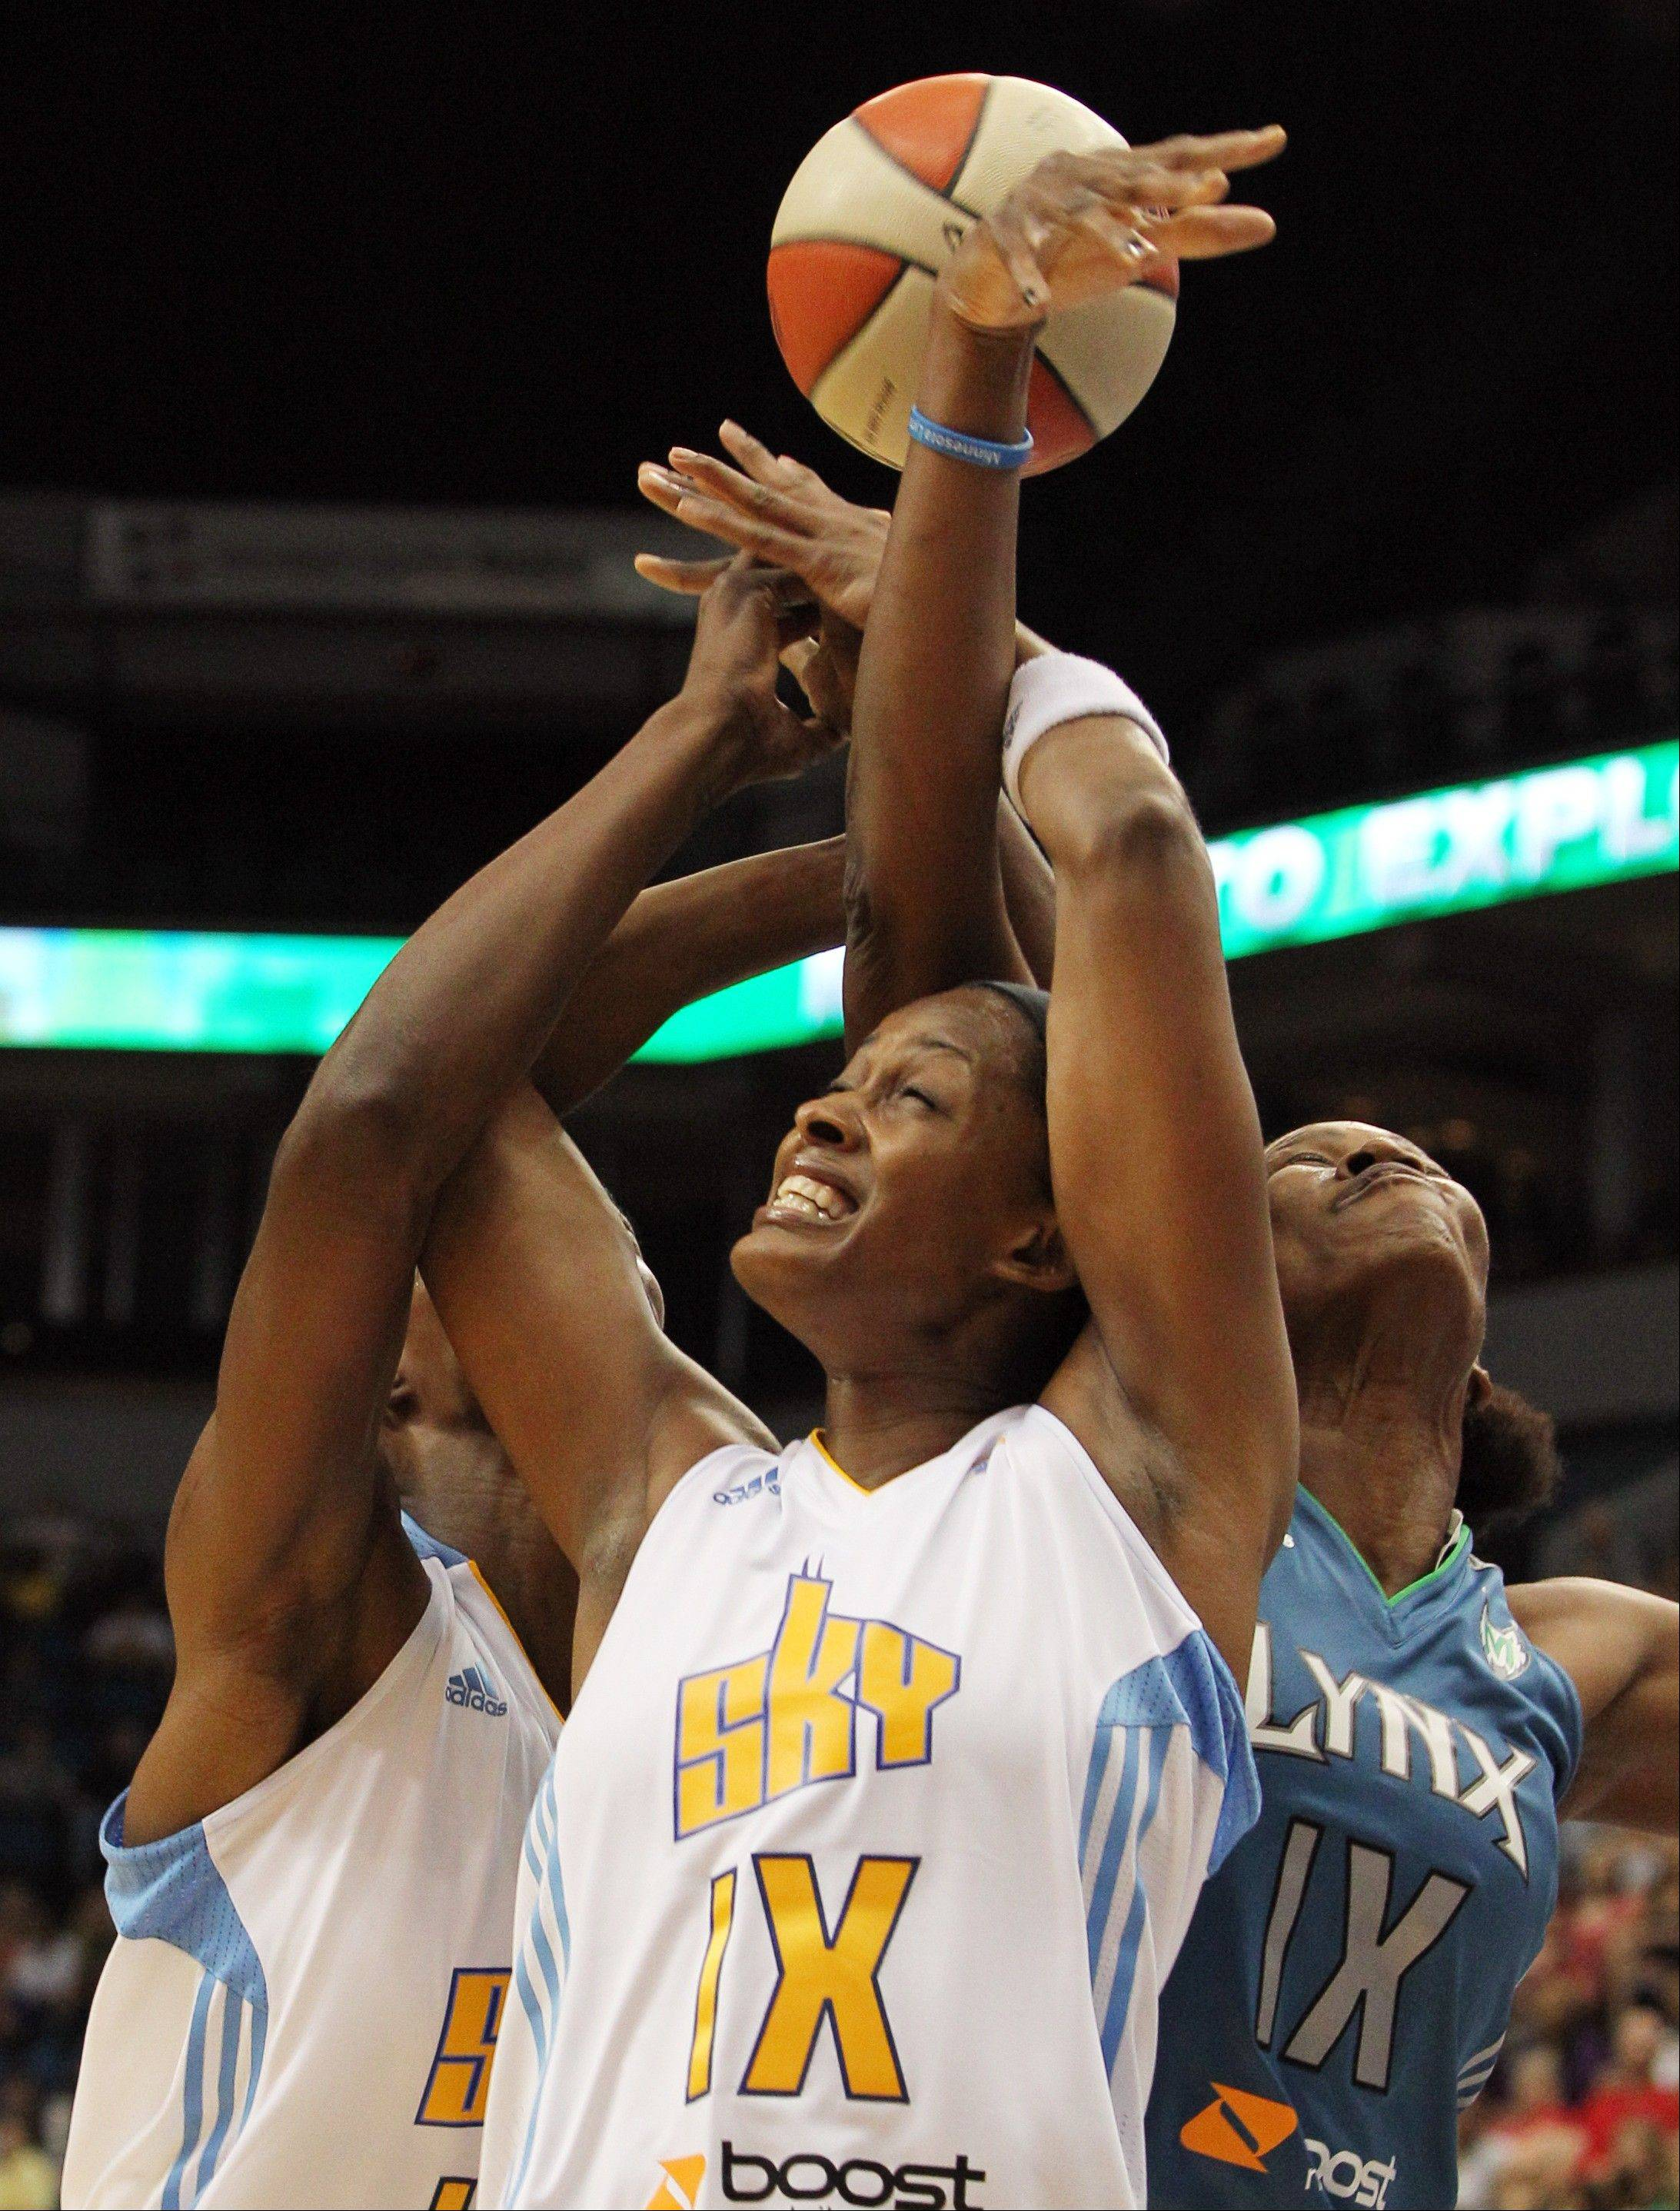 The Chicago Sky's Swin Cash, center, and Sylvia Fowles, left, battle for a rebound against the Minnesota Lynx's Taj McWilliams-Franklin Saturday during the first half in Minneapolis.